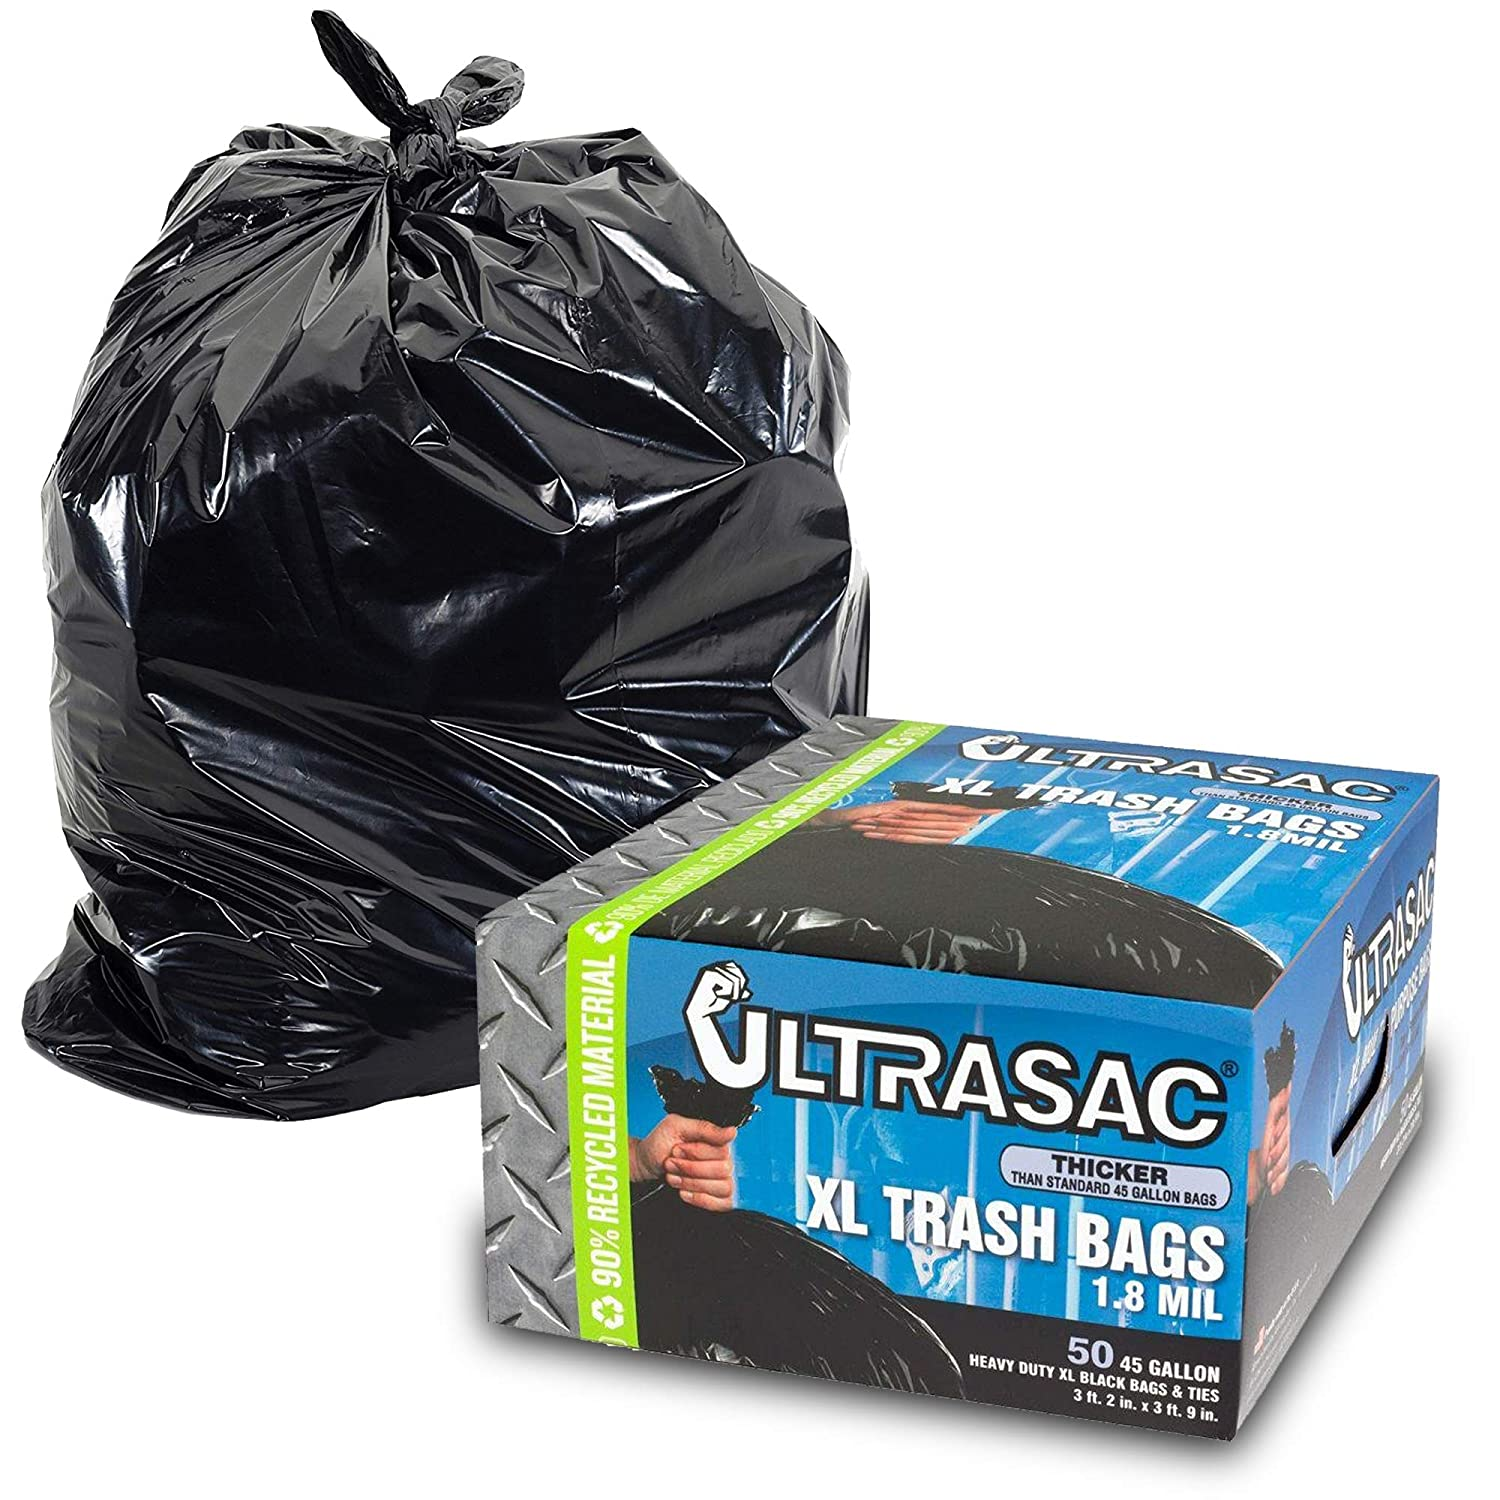 """Heavy Duty 45 Gallon Trash Bags by Ultrasac - (Huge 50 Count/w Ties) - 1.8 MIL - 38"""" x 45"""" - Large Black Plastic Garbage Bags for Contractor, Industrial, Home, Kitchen, Commercial, Yard, Lawn, Leaf,"""